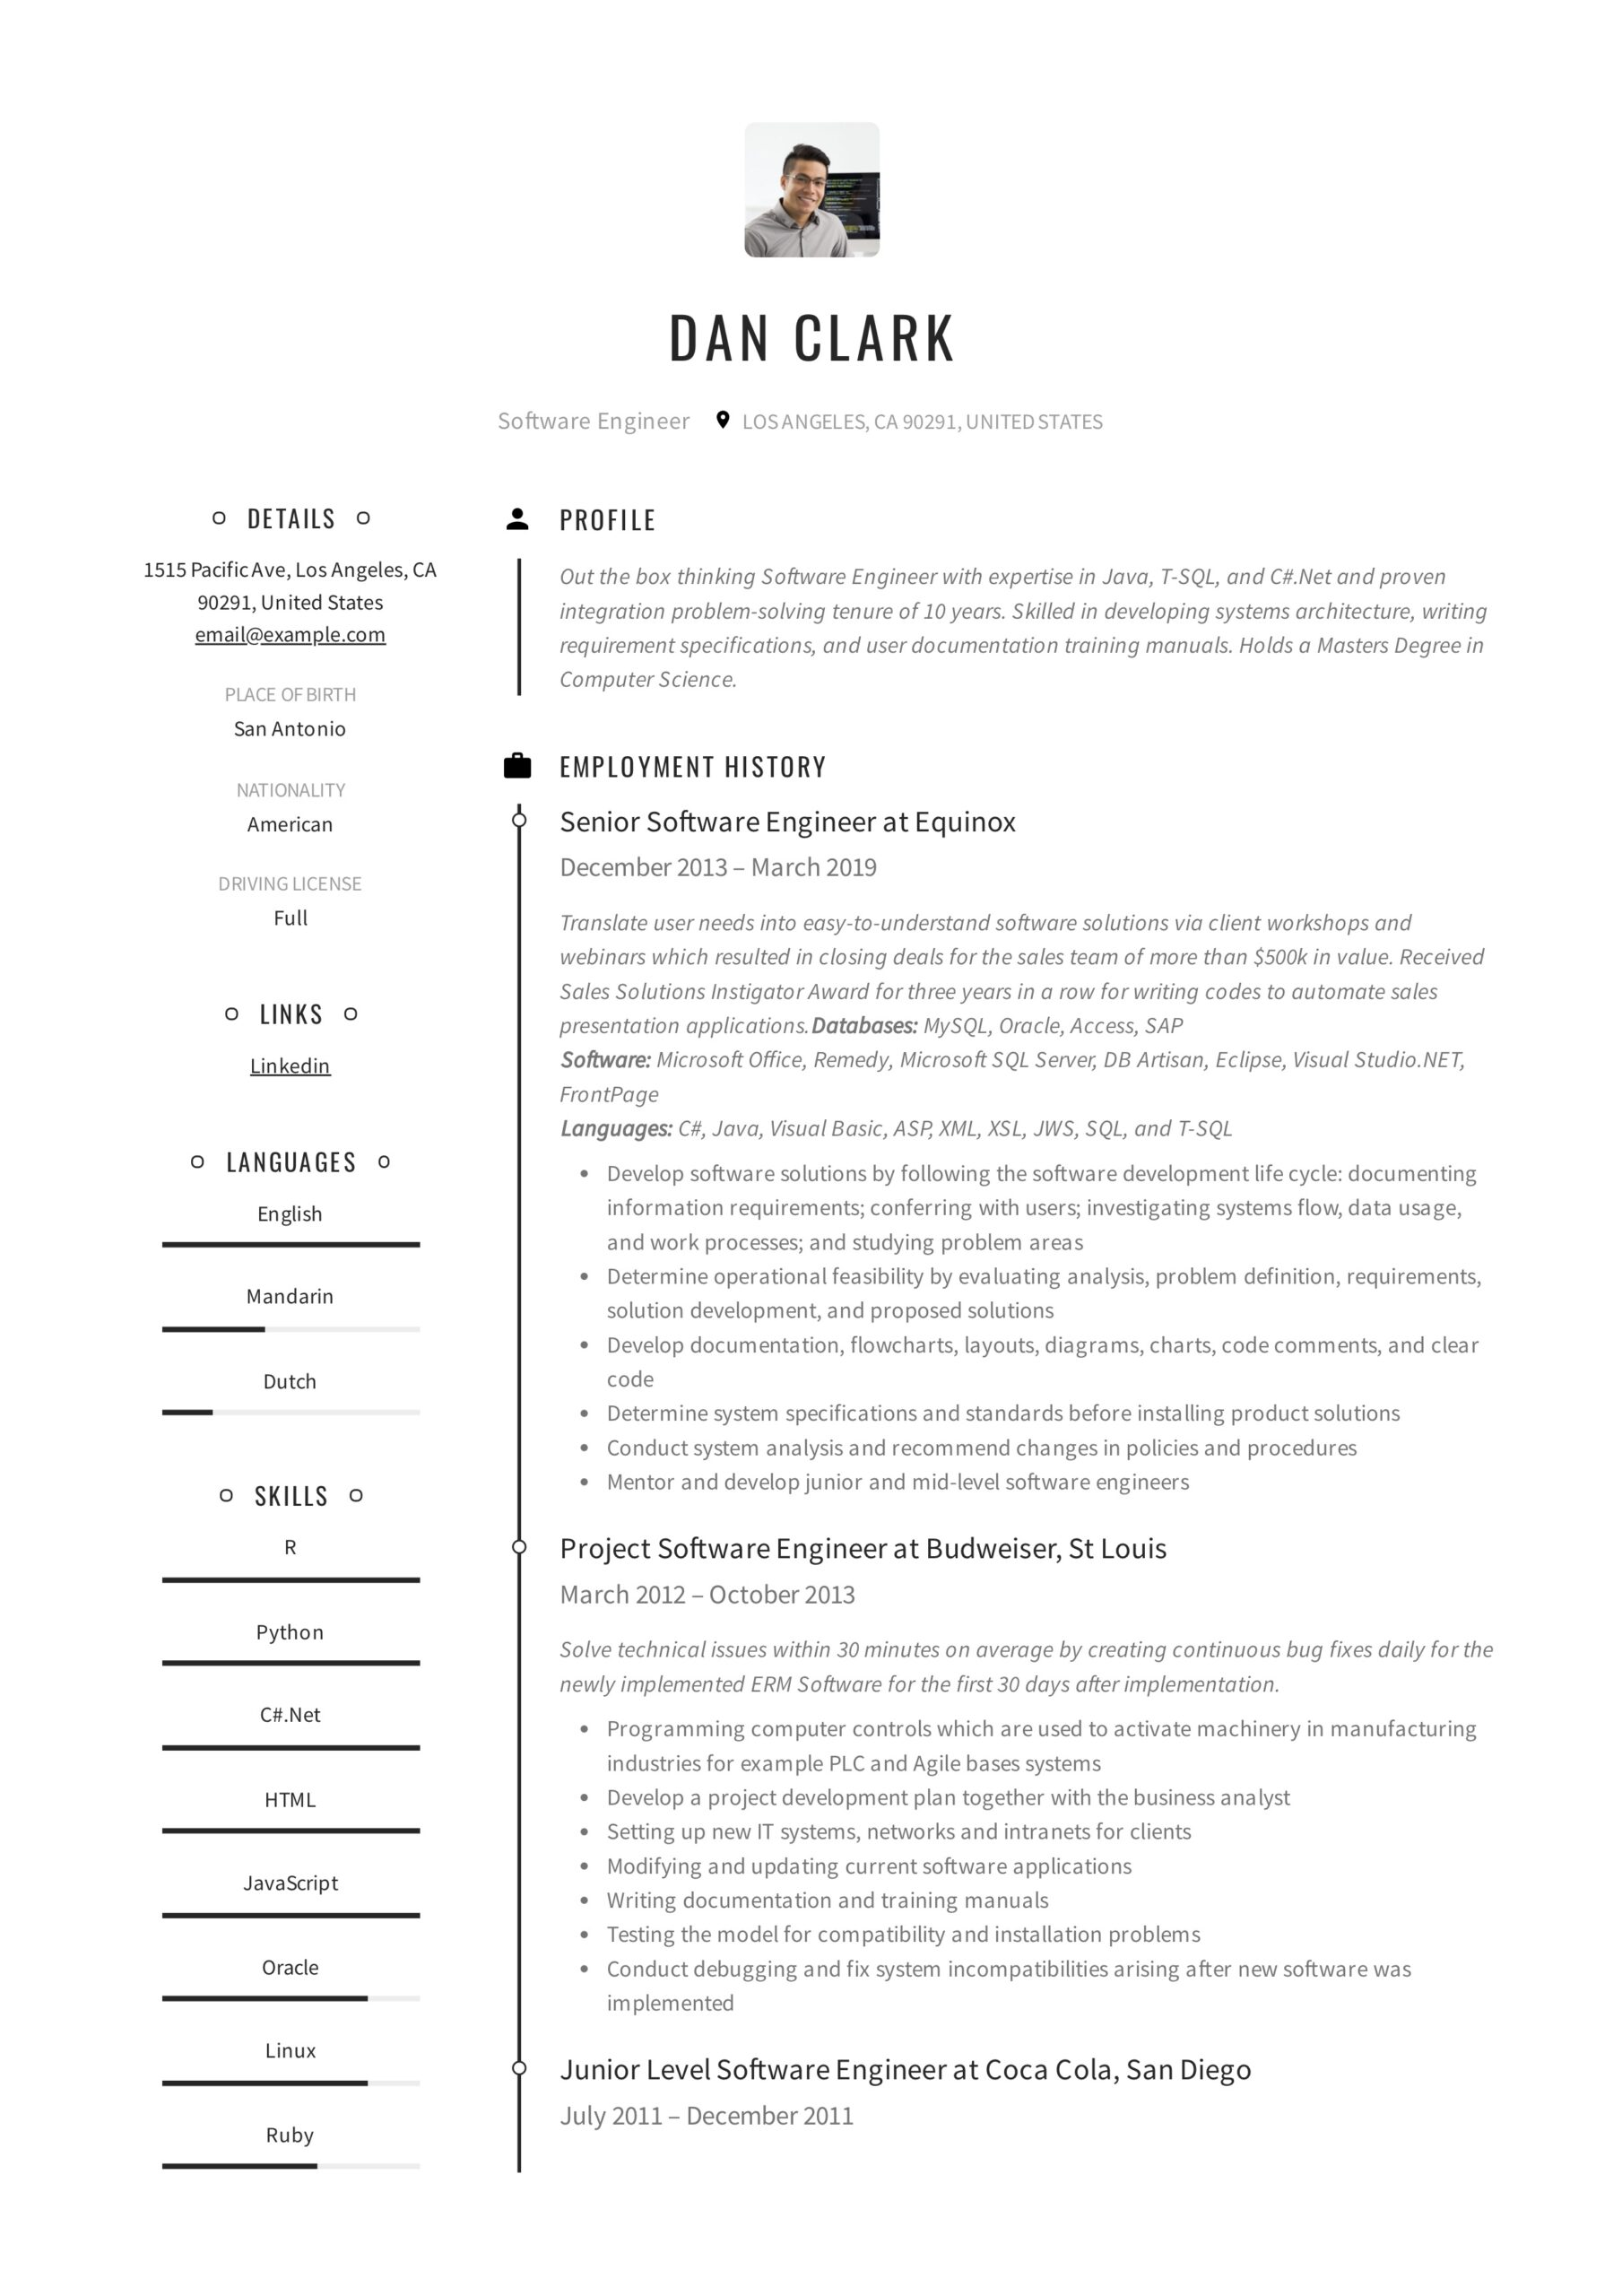 resume templates pdf word free downloads and guides dan software engineer telemetry nurse Resume Resume Templates Free Download Pdf